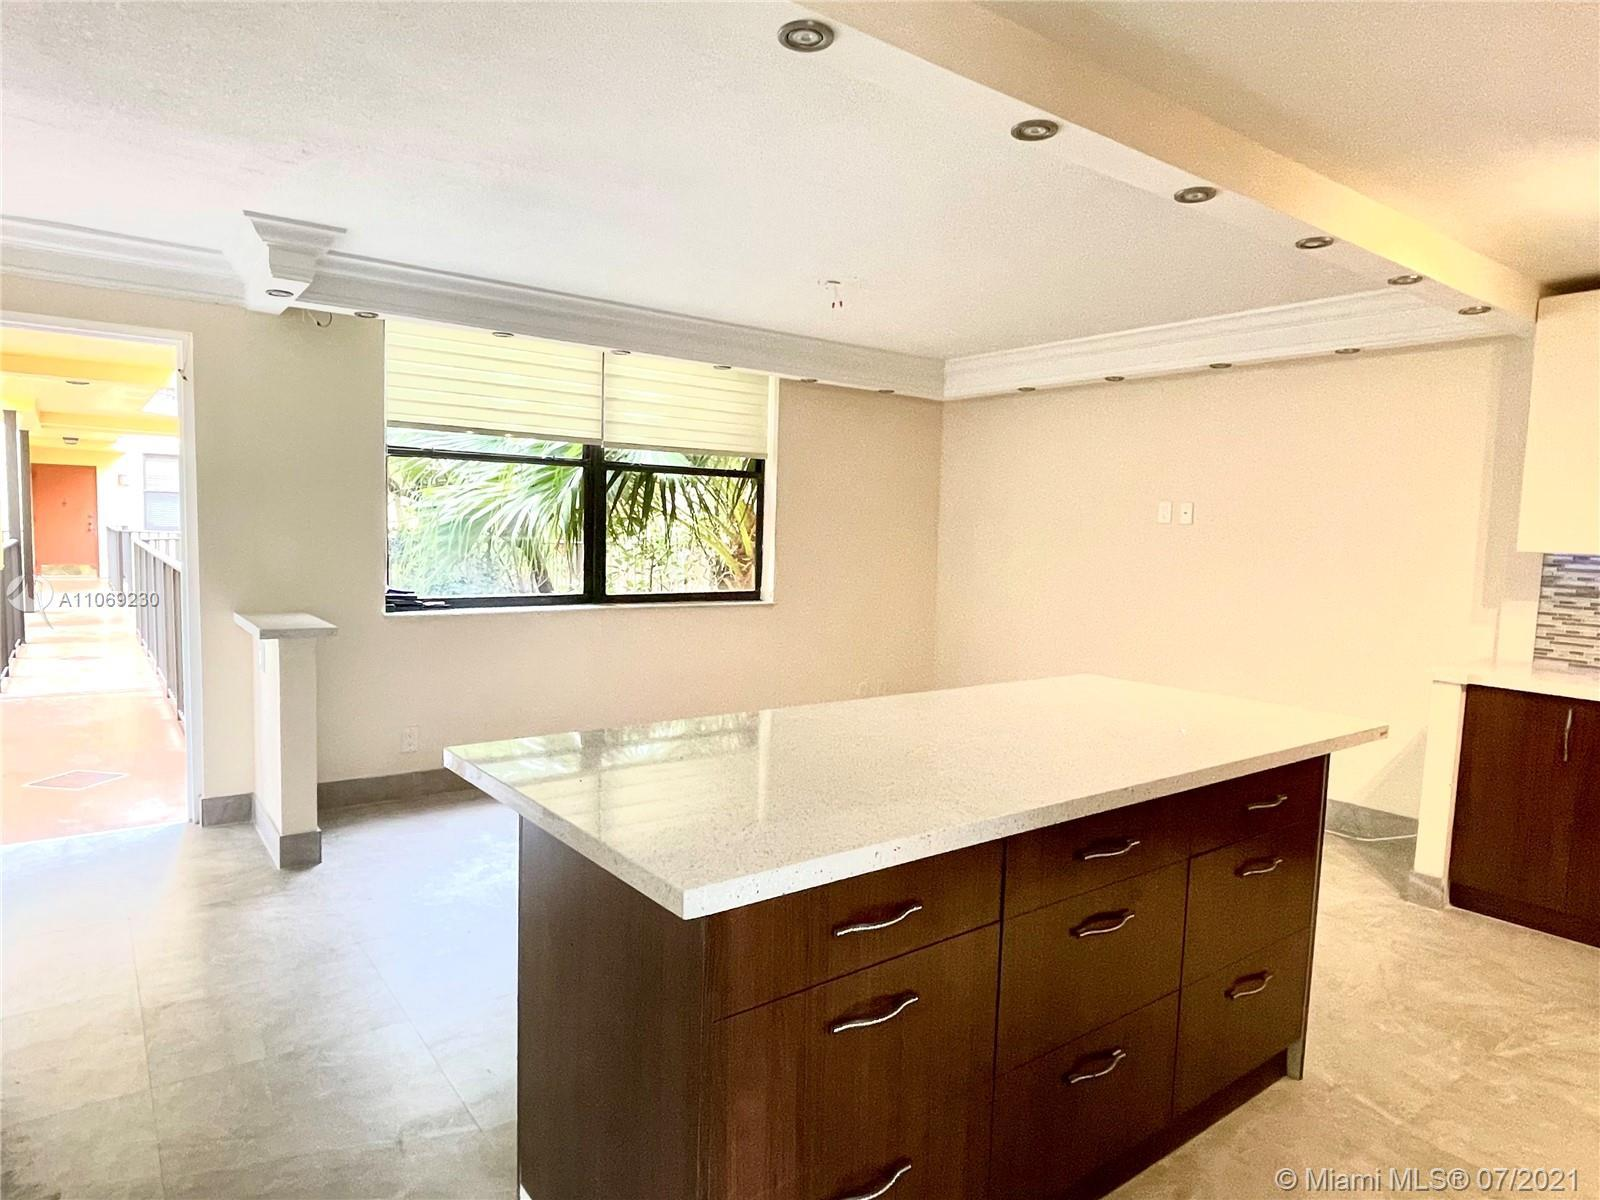 Substantially Remodeled spacious 3BDR/2 BTH located in boutique tranquil & private gated building in